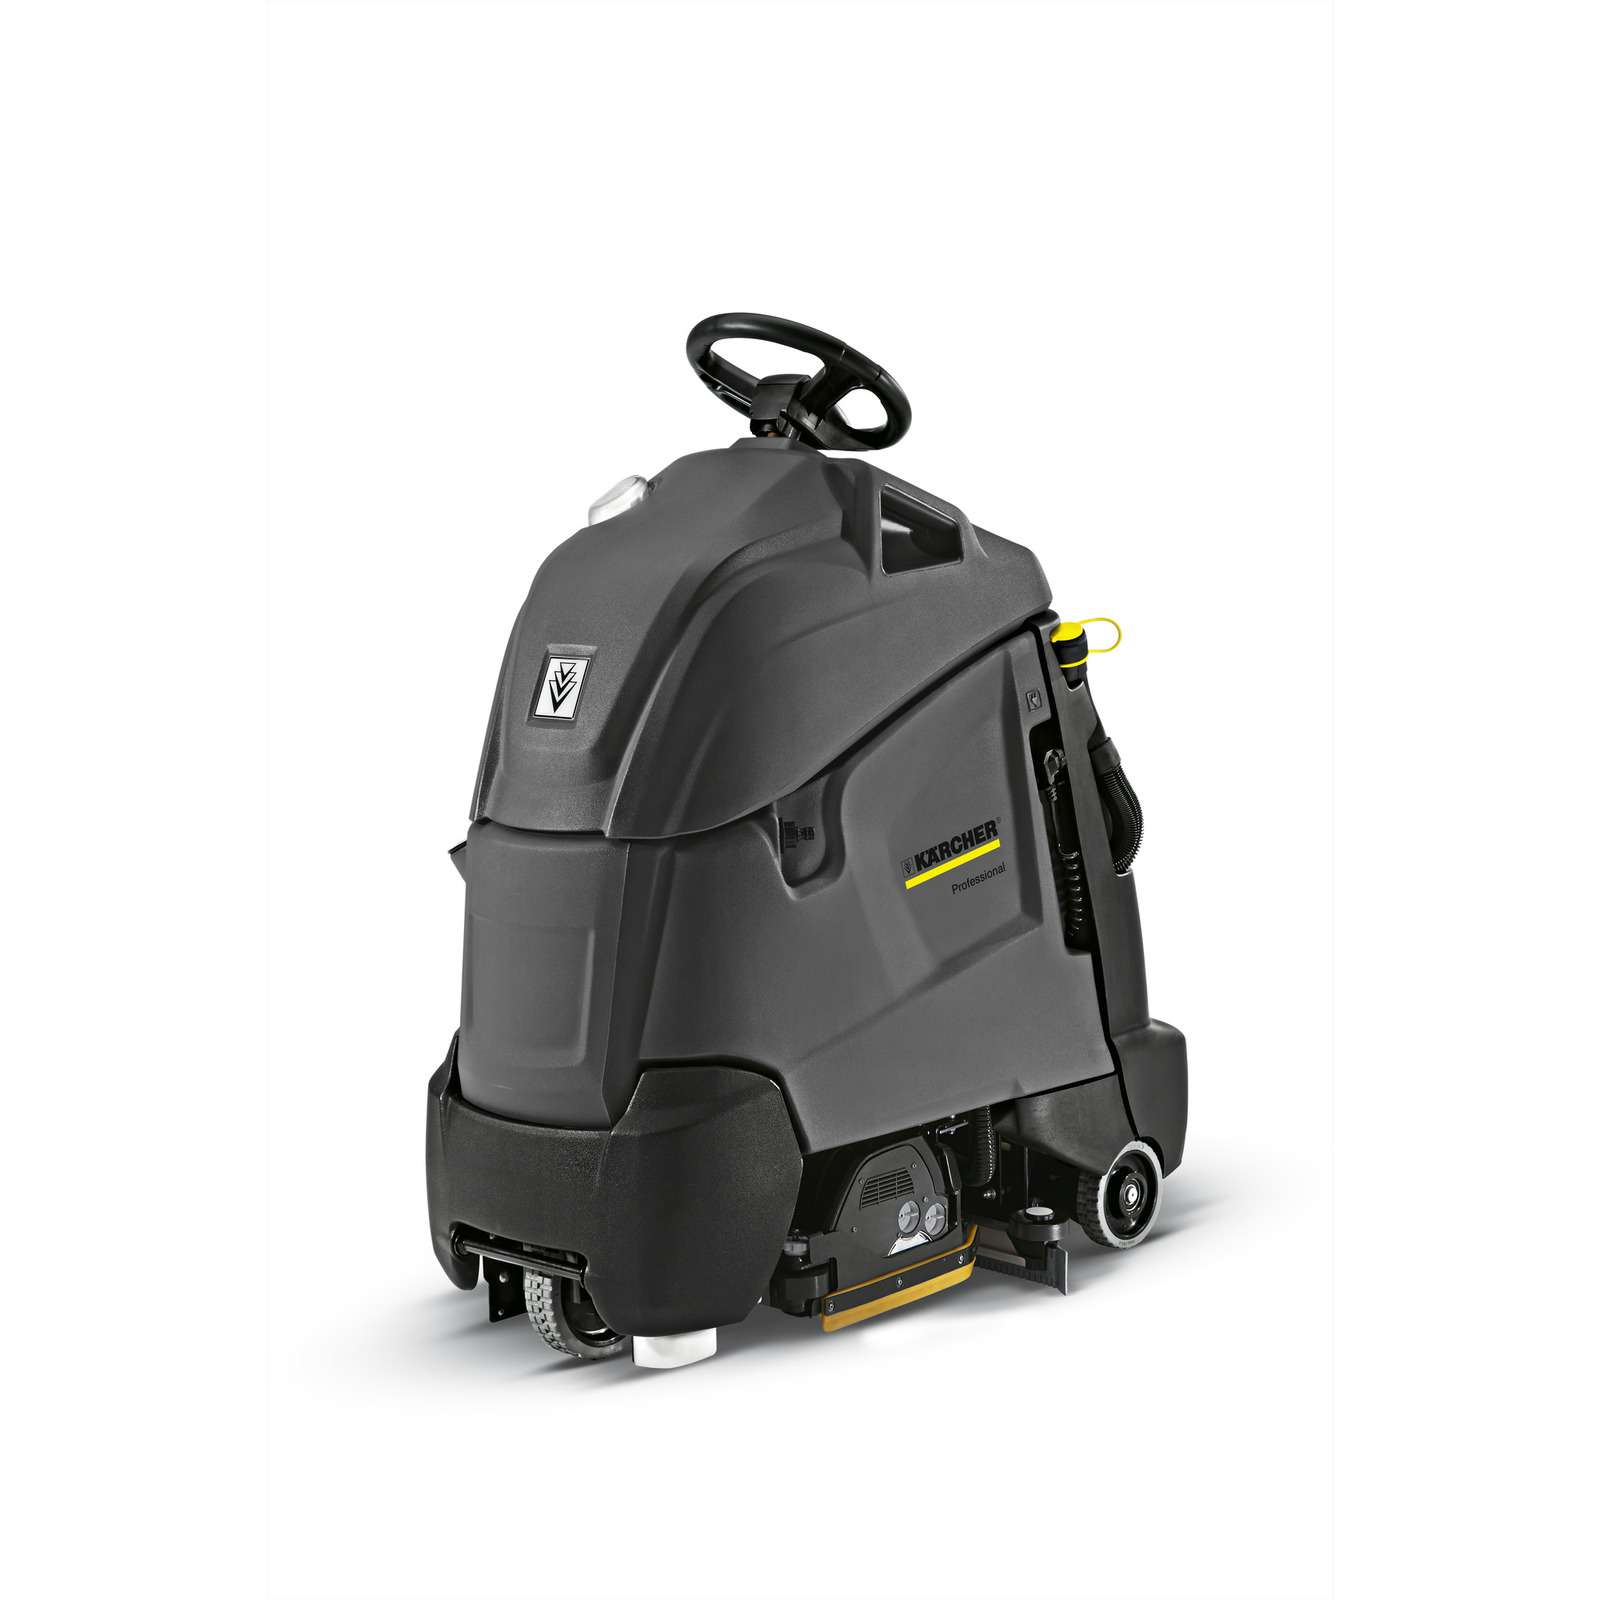 ib s content descriptionwriter = | Karcher BR55/40 RS Bp Step-on Scrubber - PowerVac